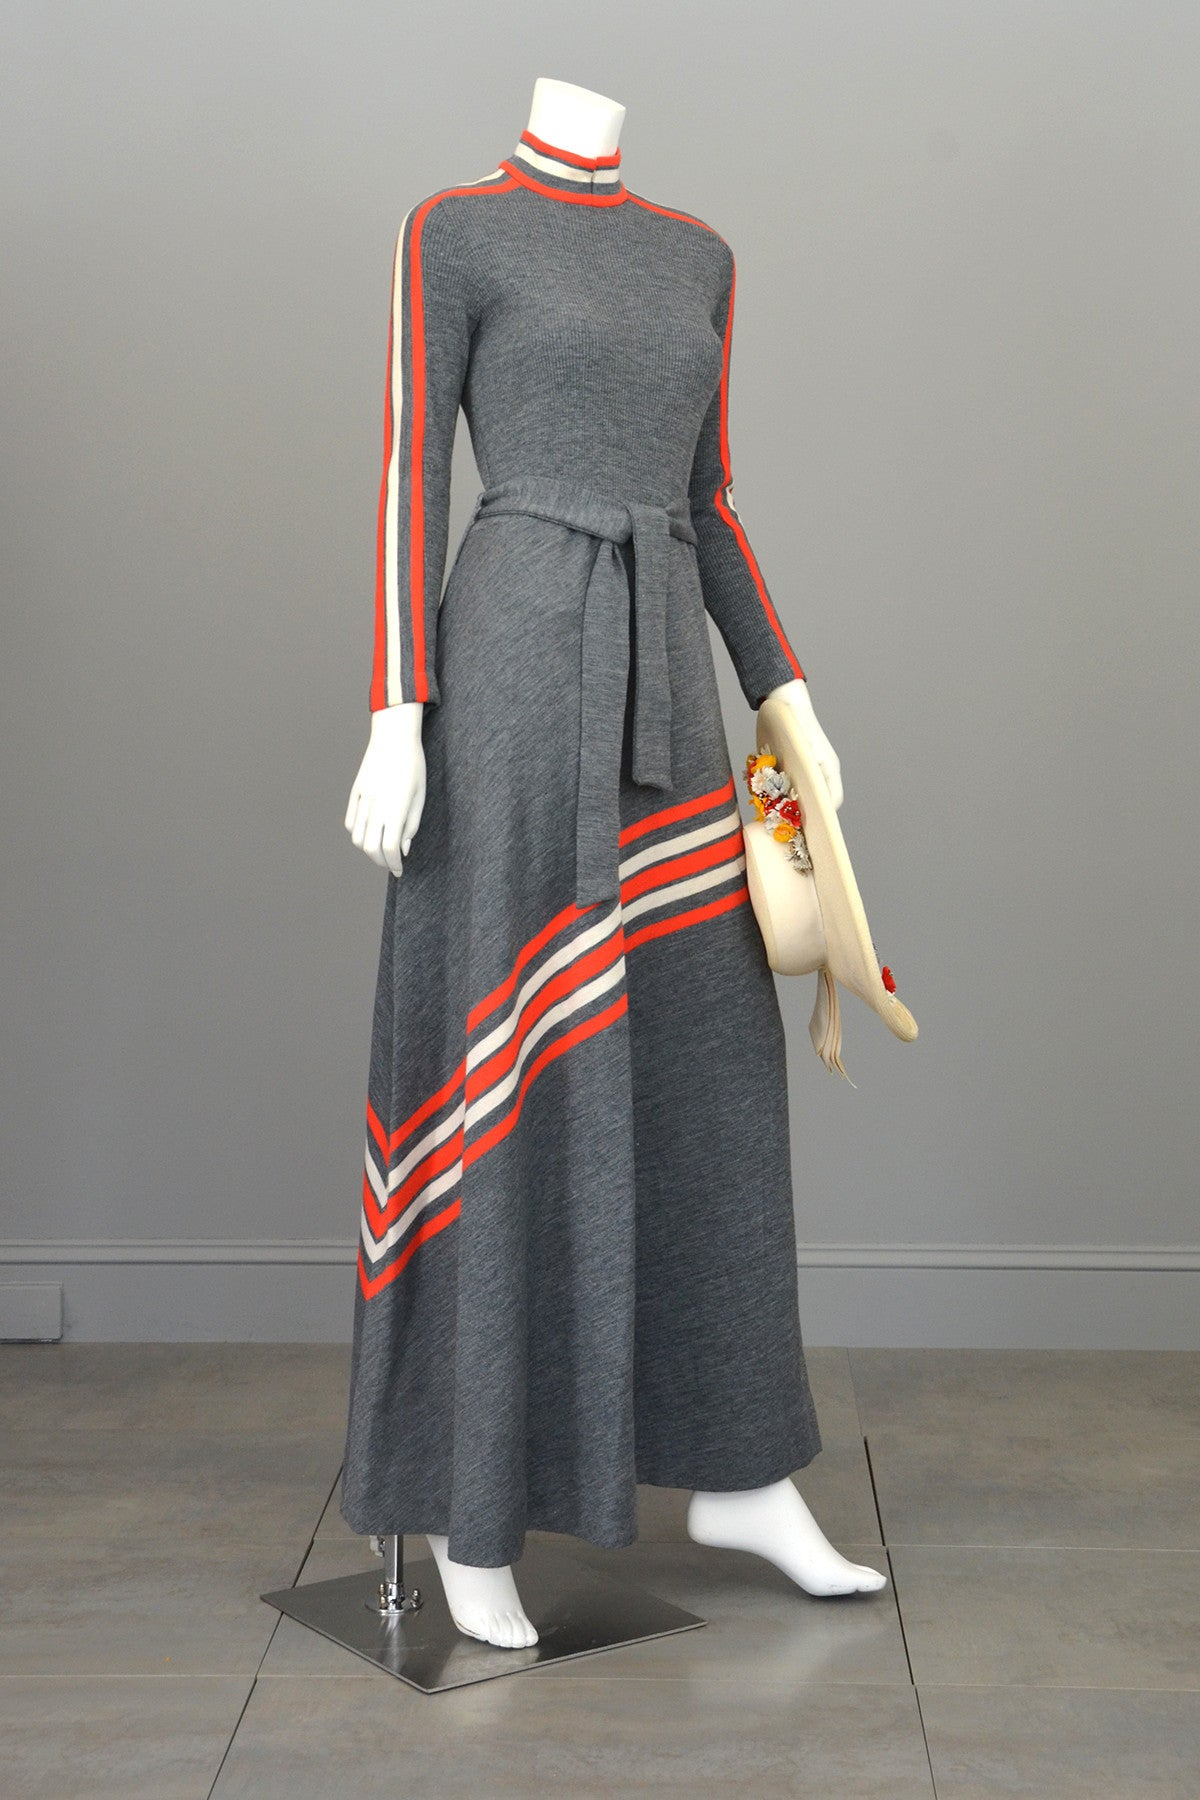 Groovy 1970s MOD Grey and Vermilion Red Striped Knit Maxi Dress by Arbe Made in Italy